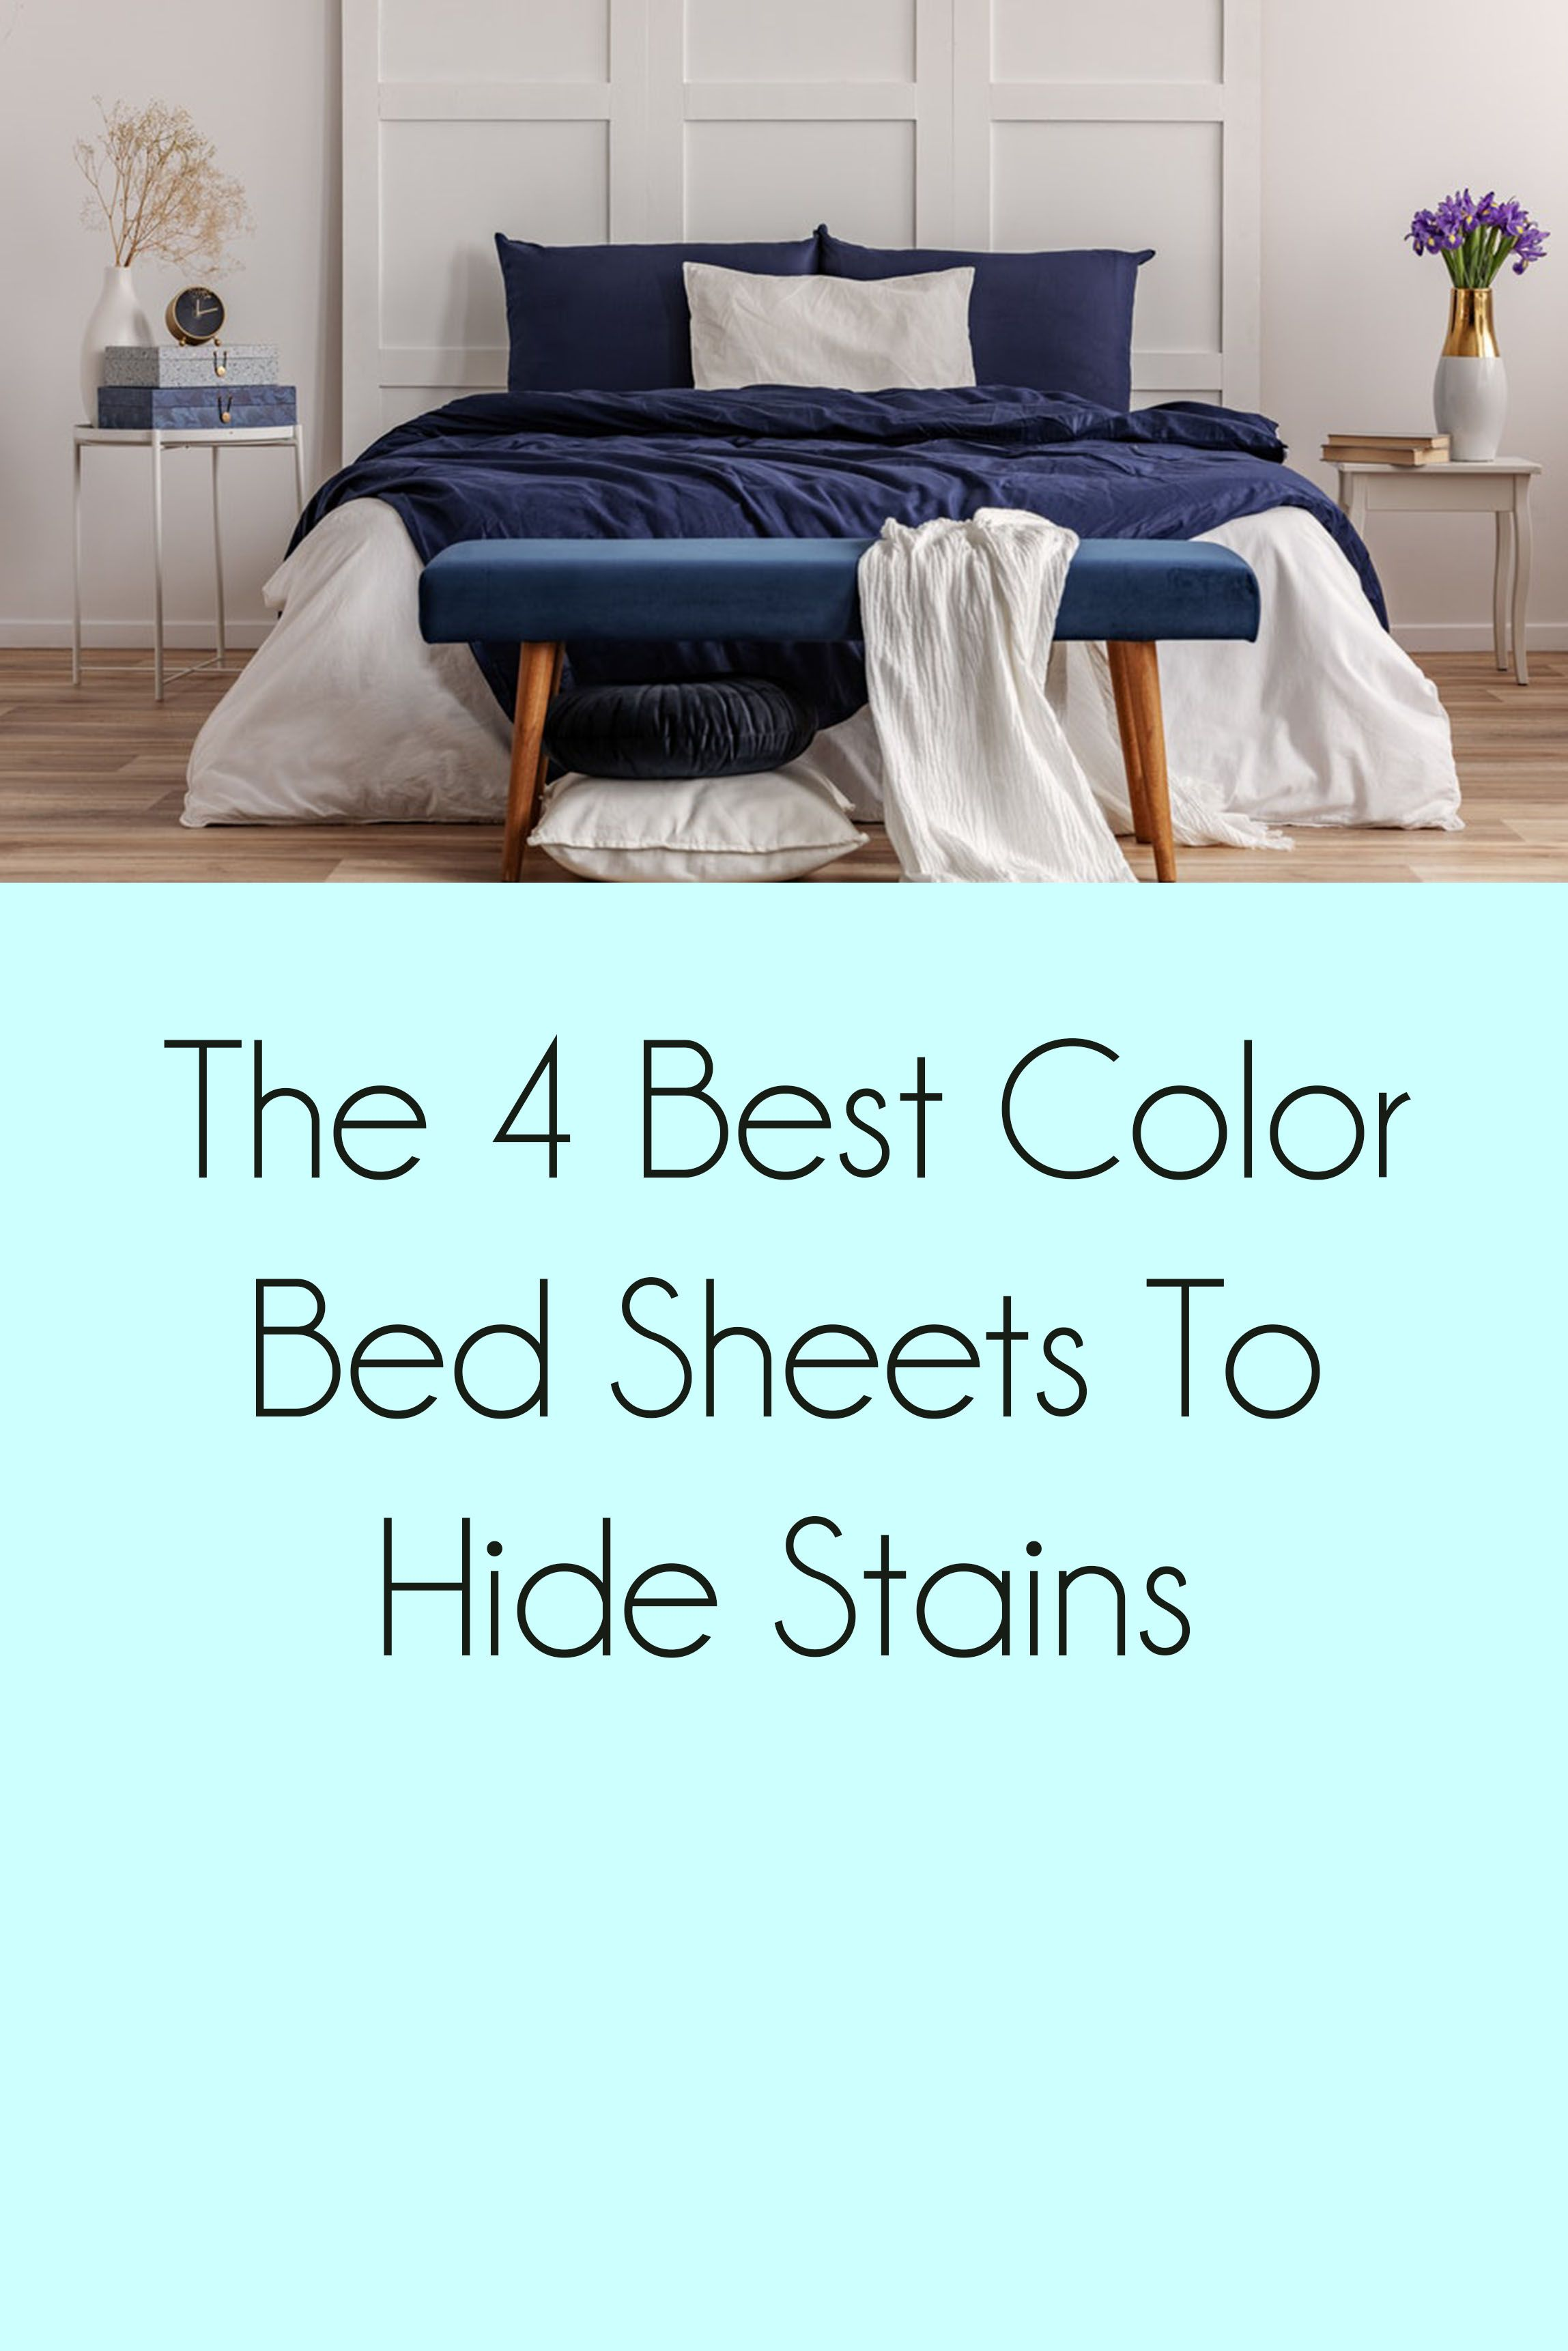 - The 4 Best Color Bed Sheets To Hide Stains Bed Sheets, Bed, Sheets